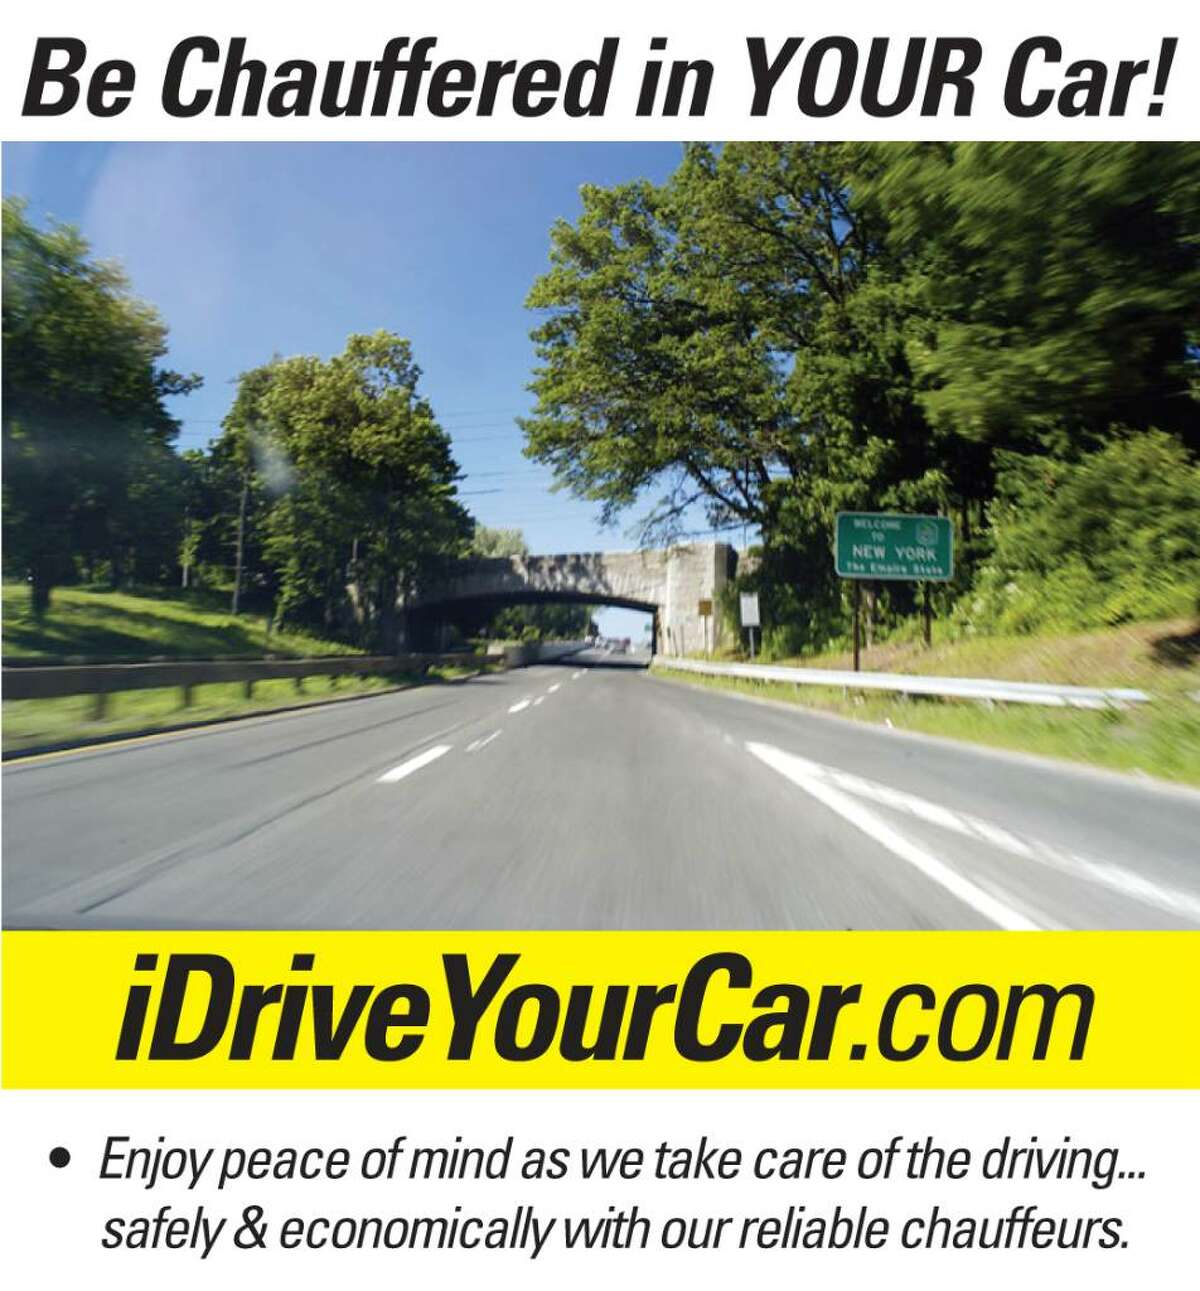 Fairfield-based iDriveYourCar.com is experiencing success in today's down economy by offering cheaper alternative to a limo service.